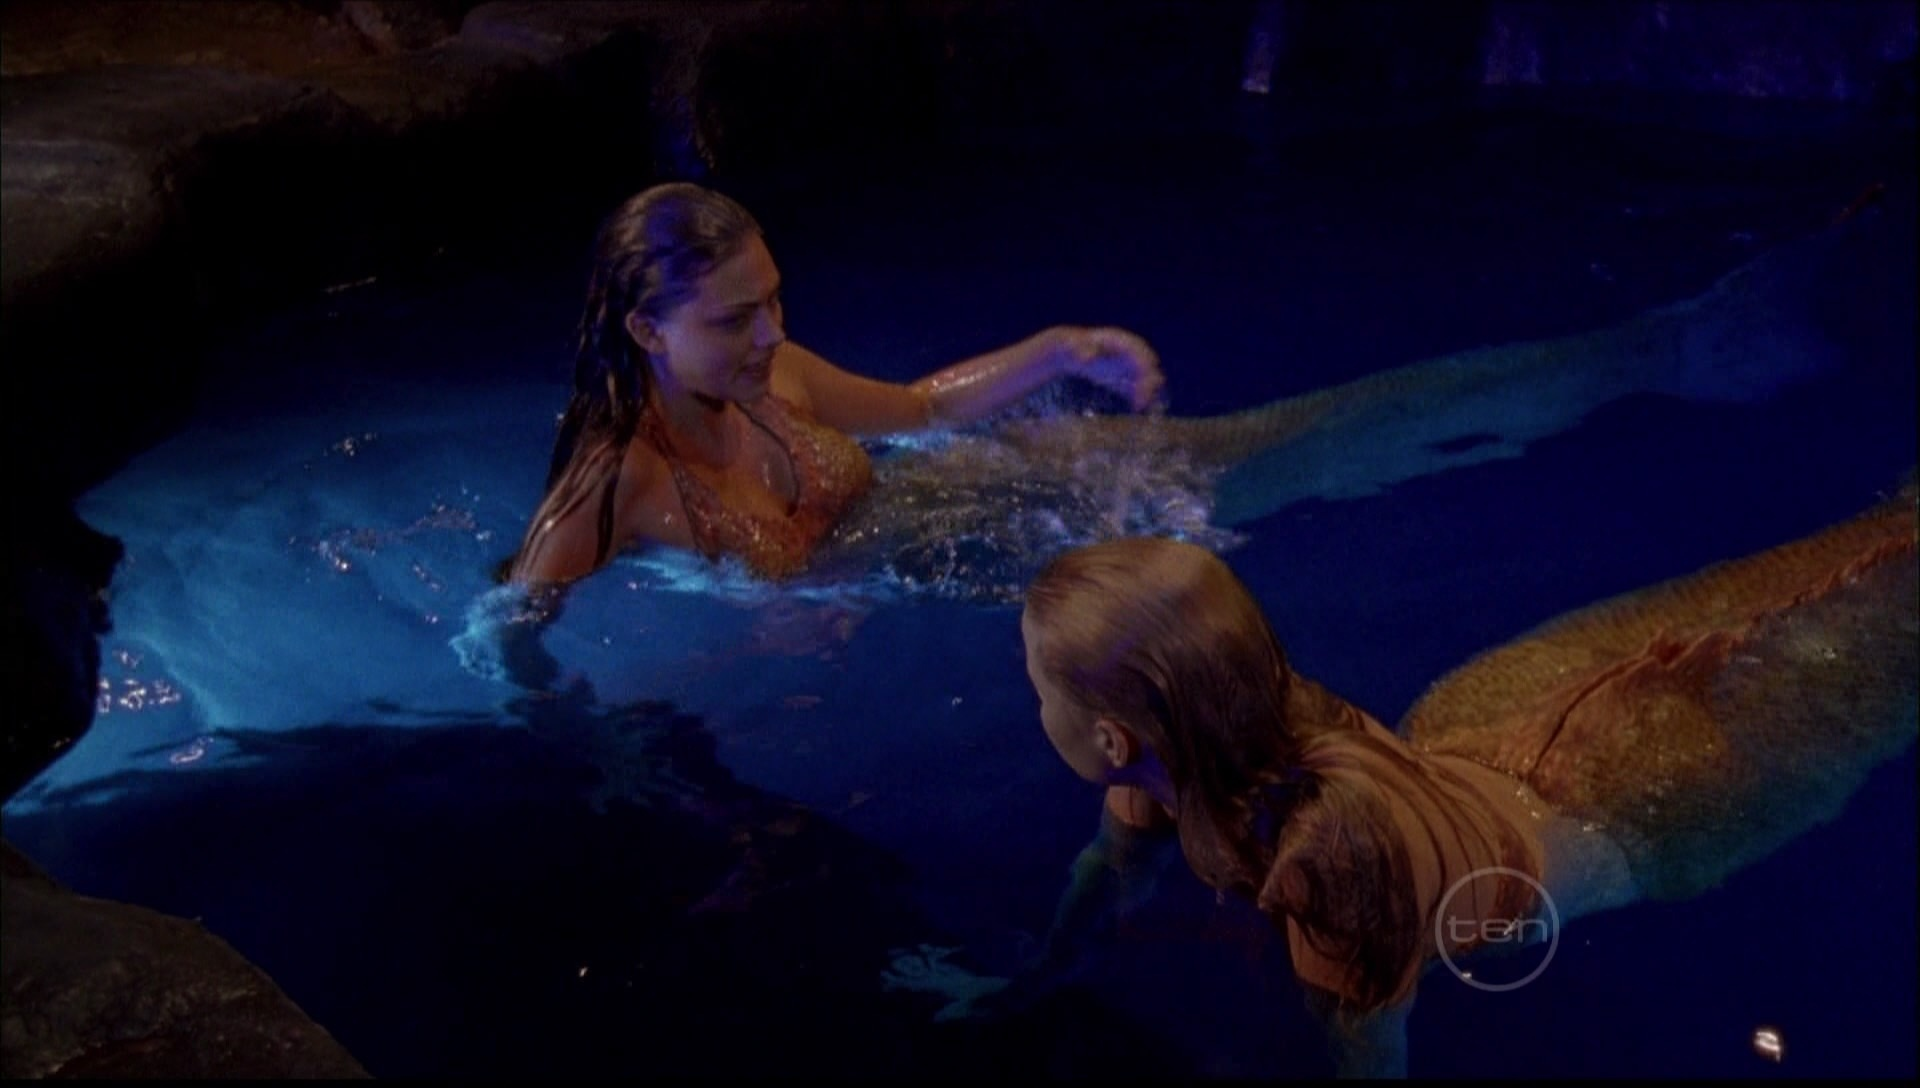 http://images1.fanpop.com/images/photos/2100000/Emma-and-Cleo-in-the-moon-pool-h2o-just-add-water-2180627-1920-1088.jpg